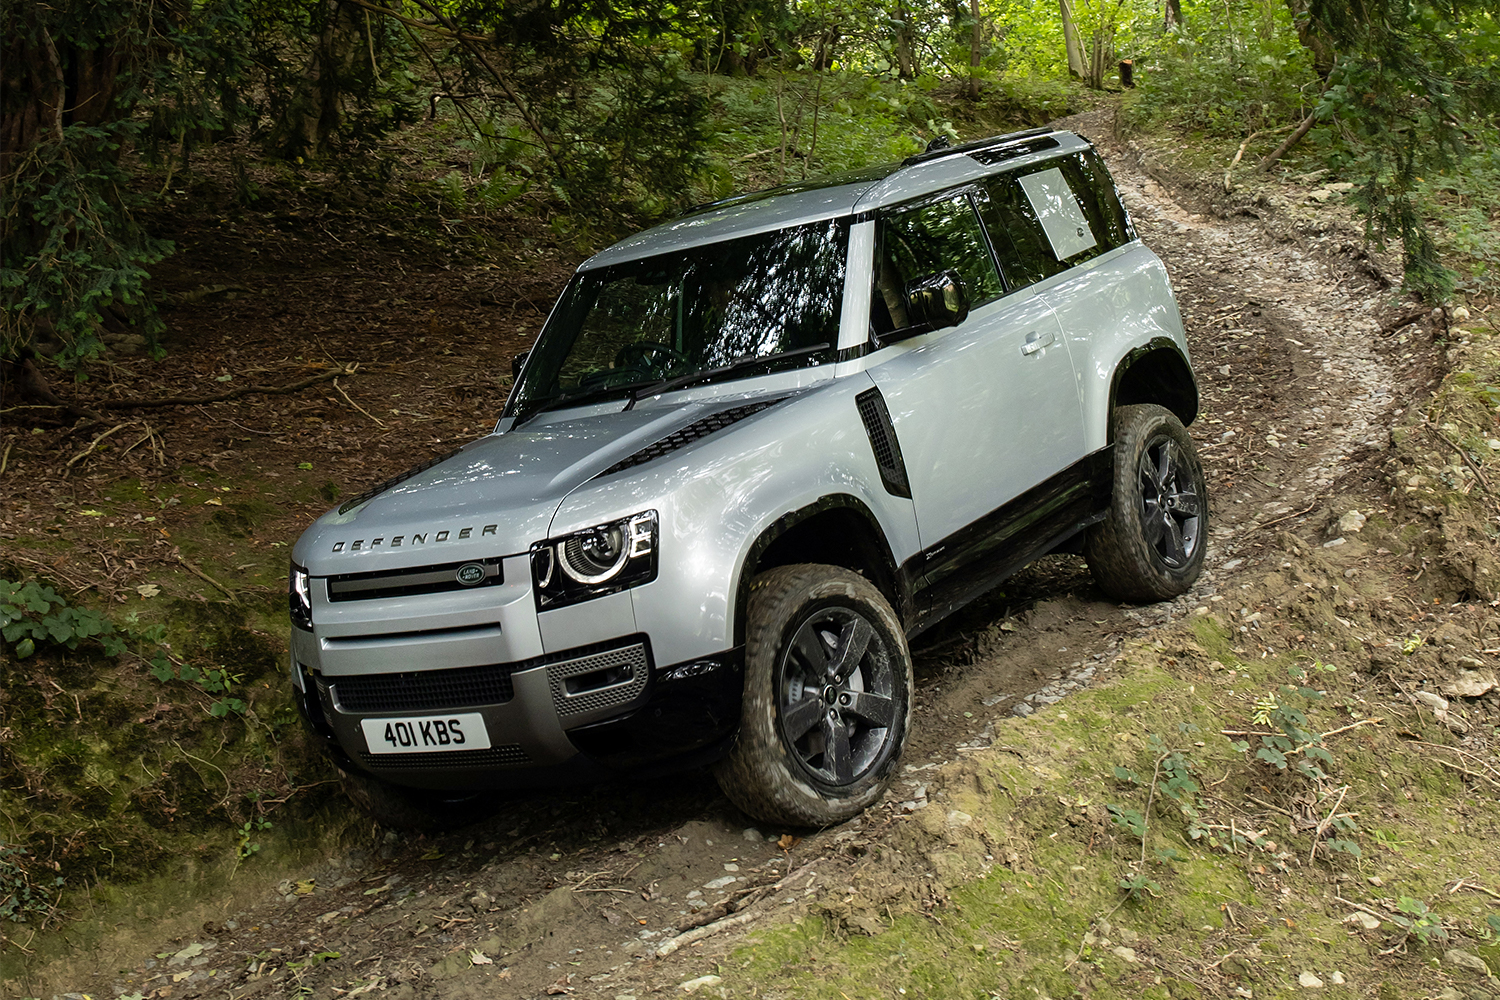 The 2021 Land Rover Defender 90 driving down a trail in the woods. We reviewed the luxury two-door SUV after test driving it in August 2021.